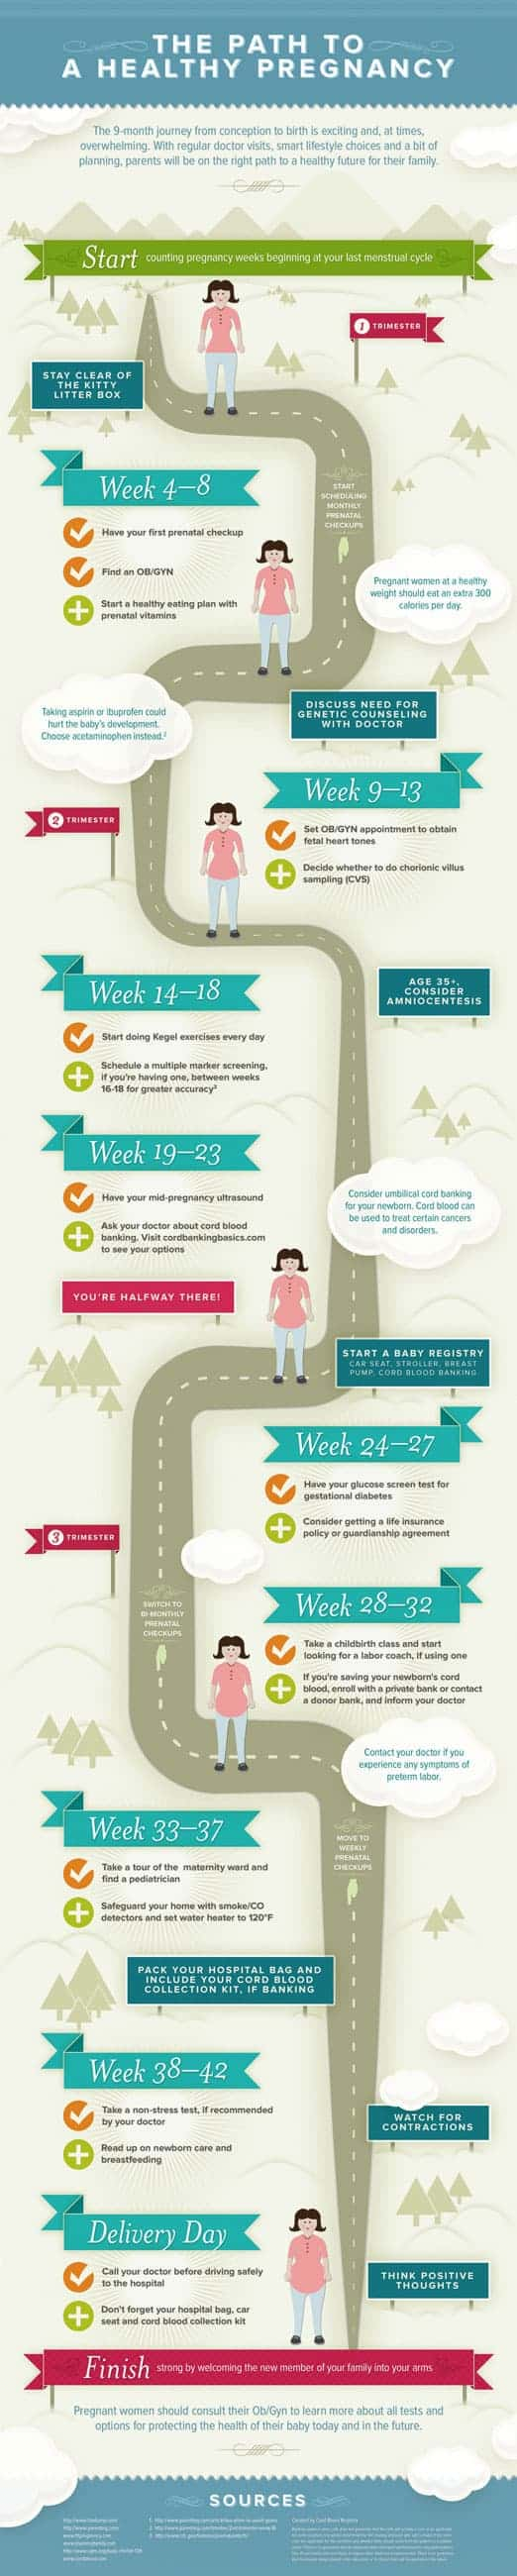 The Path To A Healthy Pregnancy [Infographic]